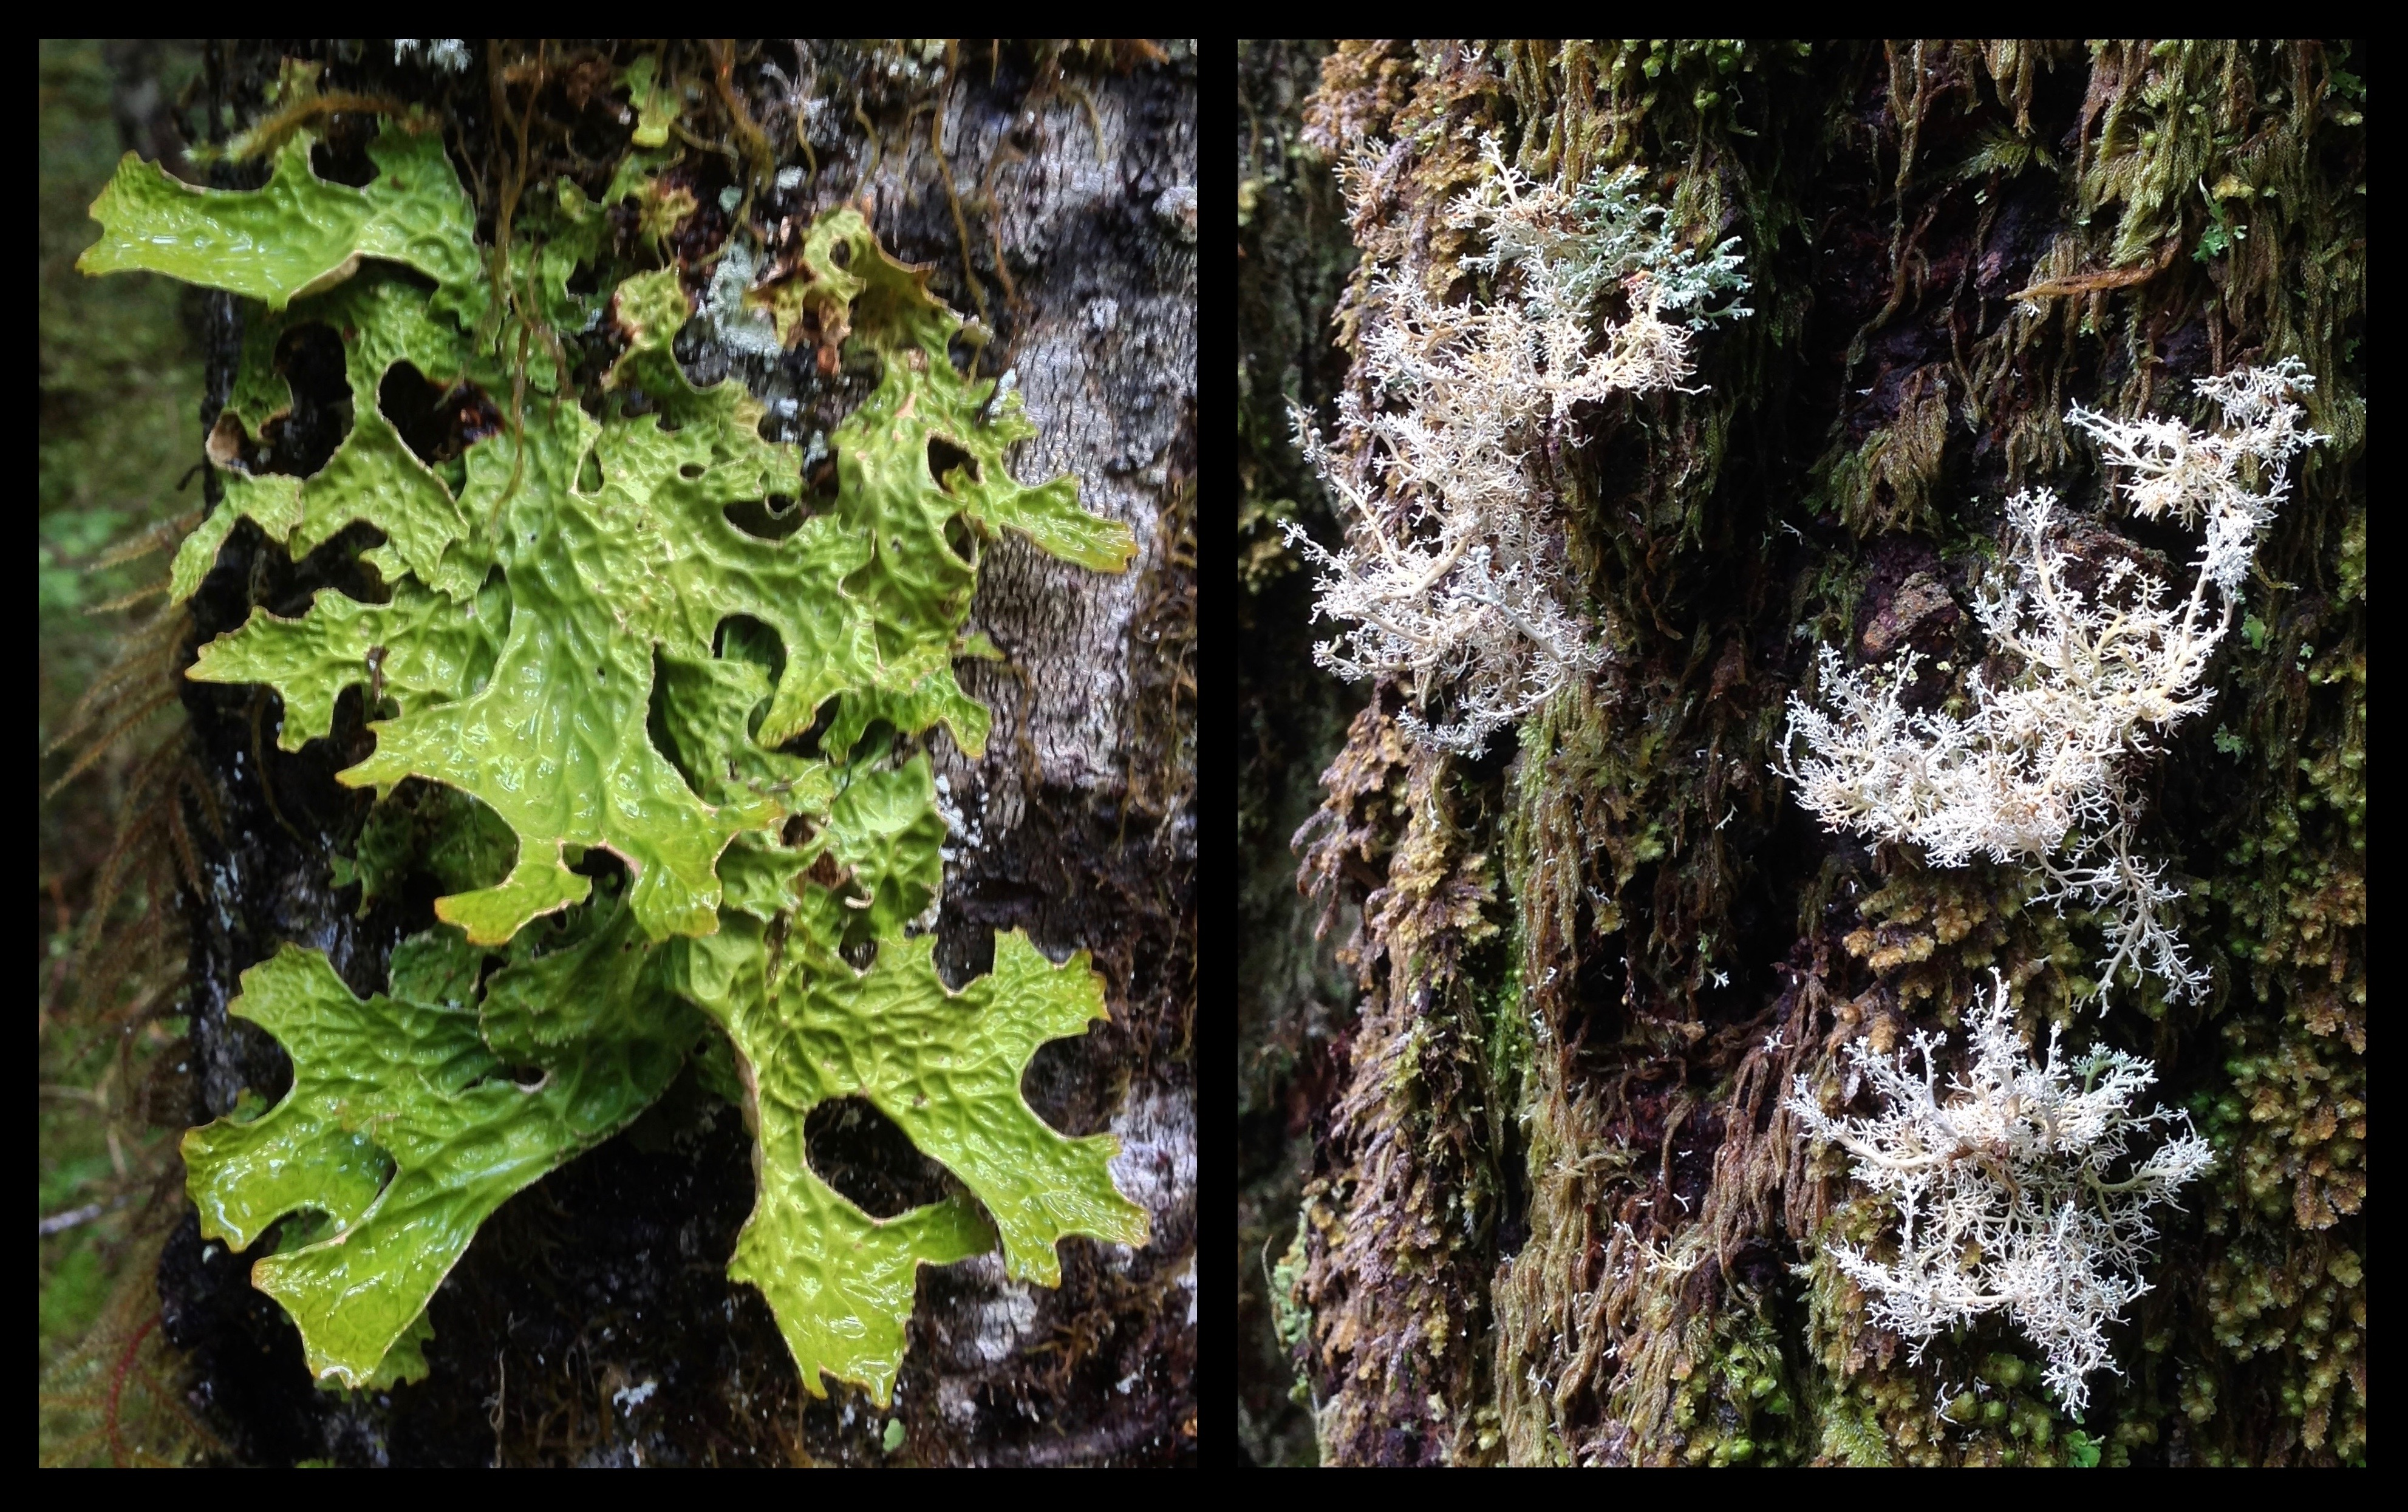 Lichens also flourish in the rainforest's abundant moisture. Long thought by morbid imaginations to resemble lung tissue, the lungwort (Lobaria pulmonaria) (left) is sensitive to air pollution and is thus an indicator of woodland health and maturity. Like a wintry forest in miniature, tiny ball lichens (Spaerophorus sp.) (right) spread delicate branches across their treeside barkscape. Carbon River Green Lake Trail, May 11, 2014.